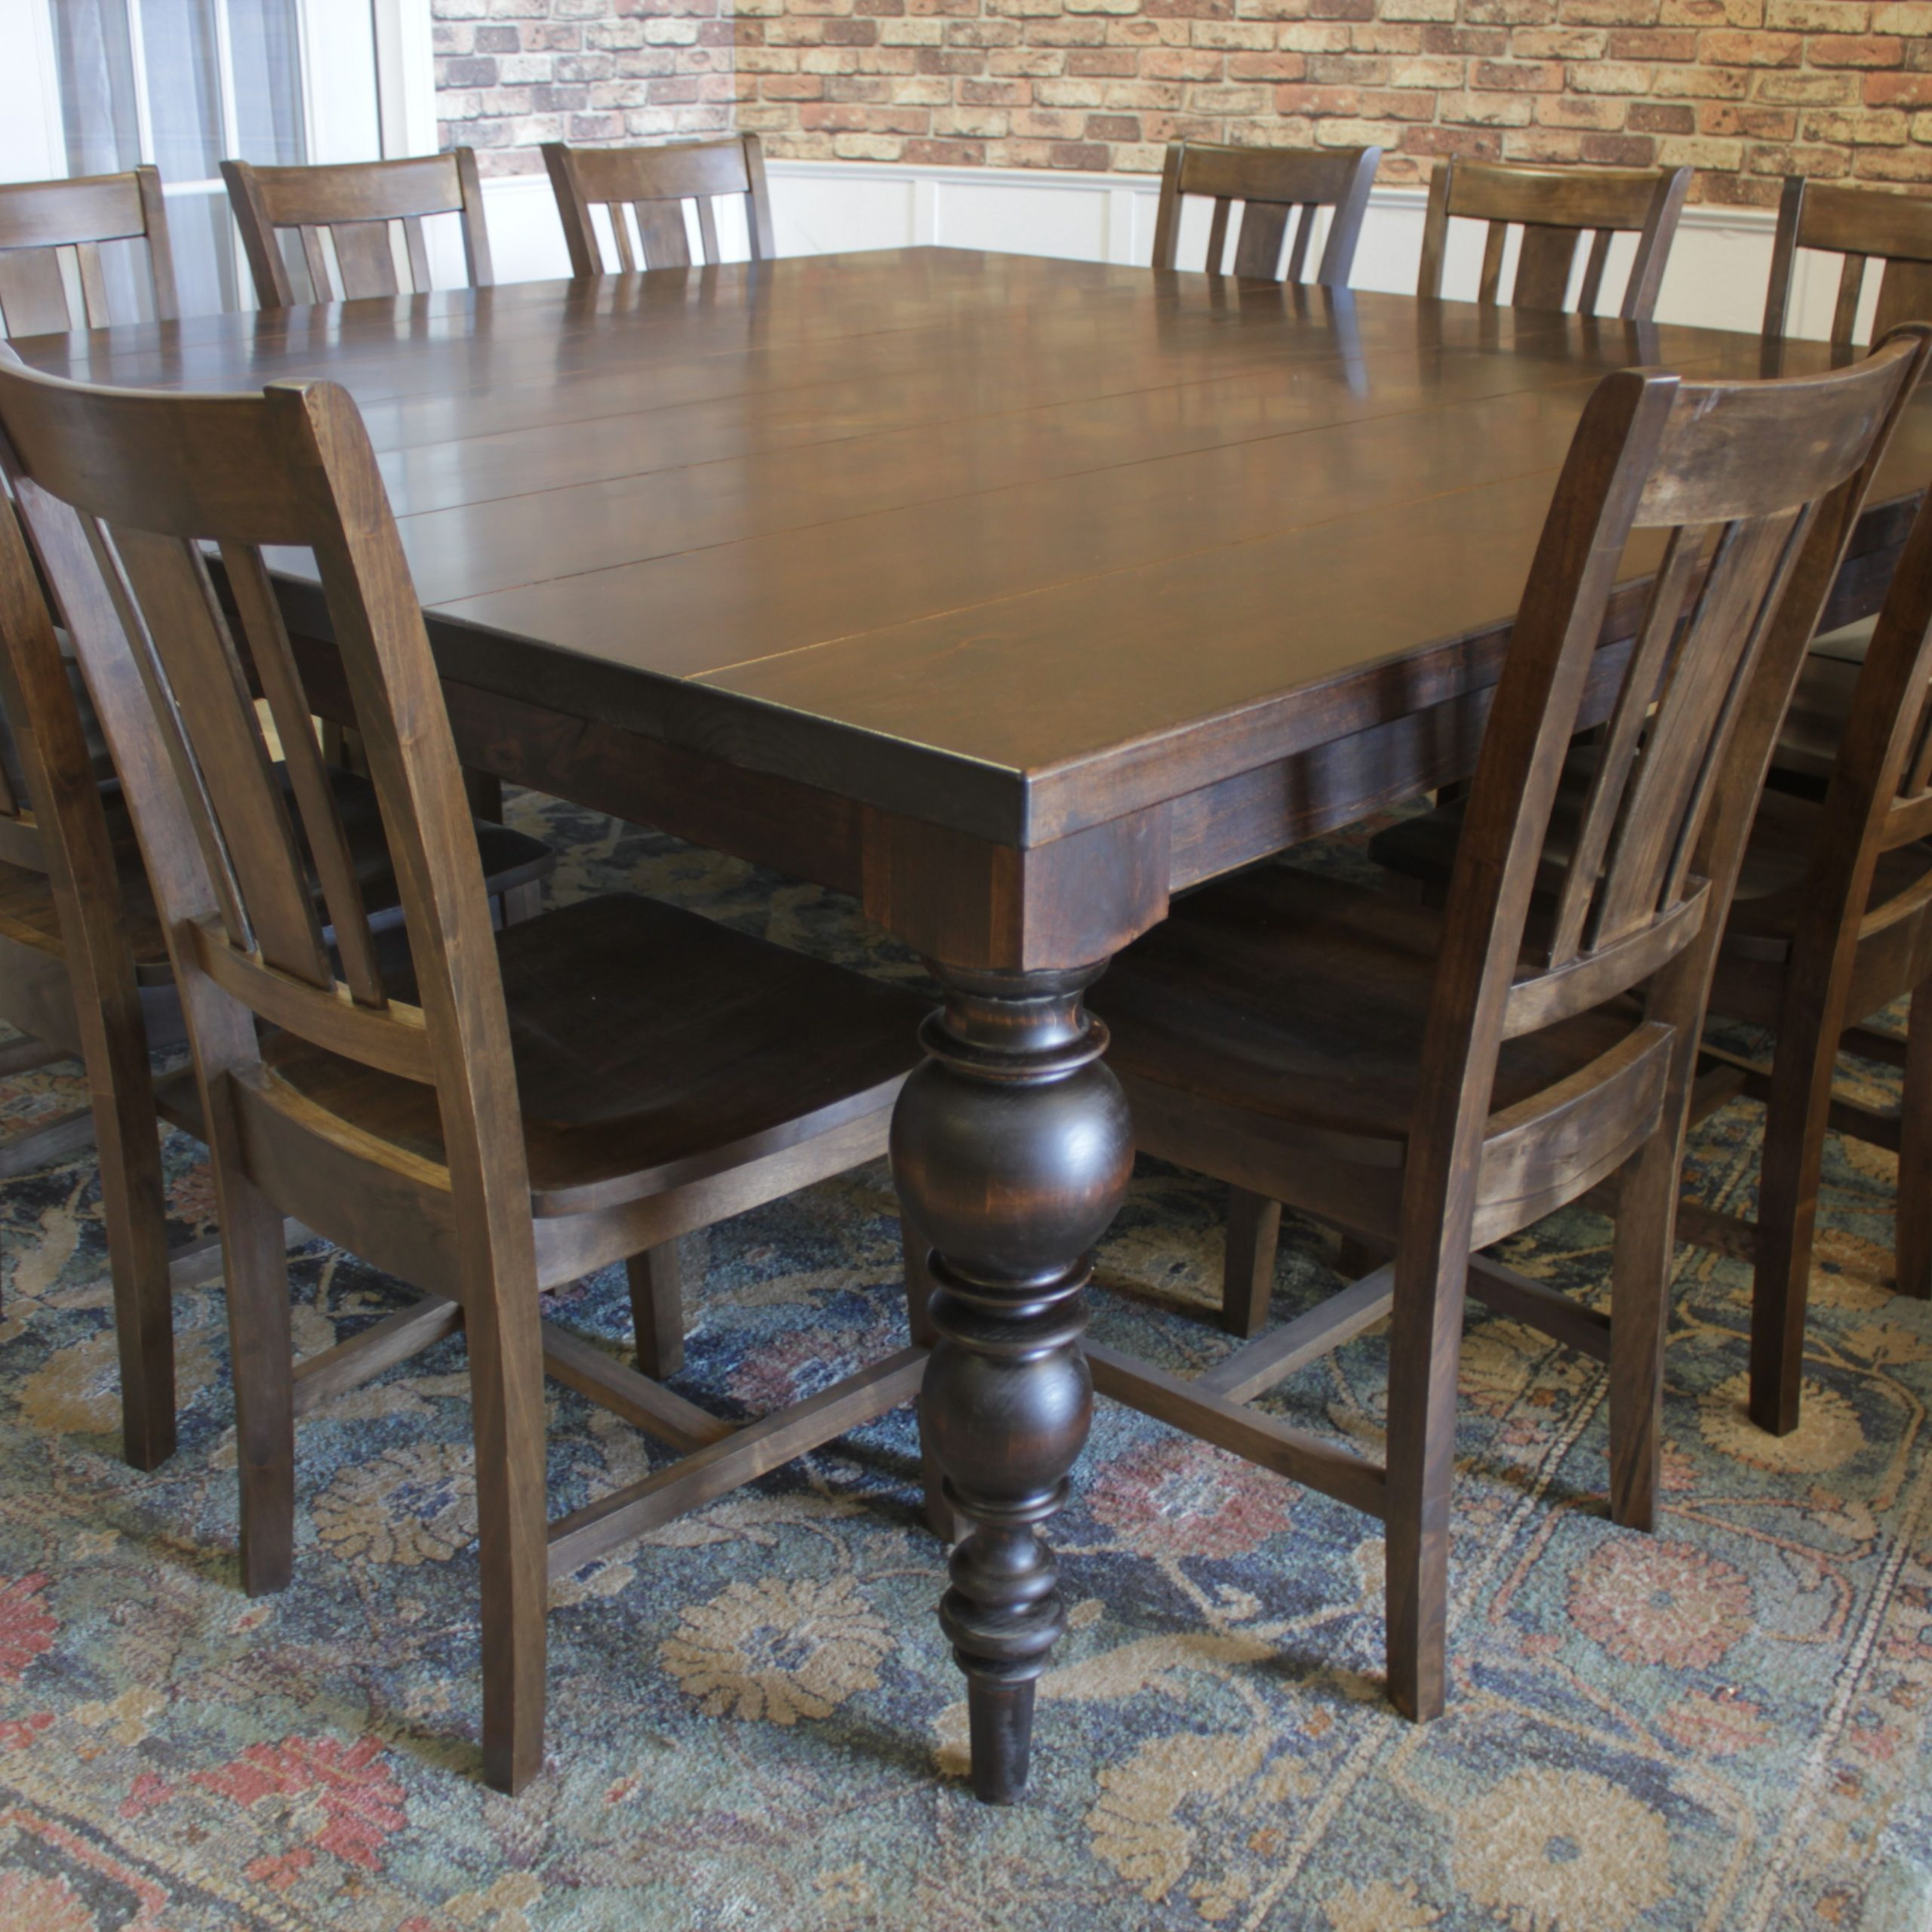 Well Known Large Rustic Look Dining Tables Throughout This Large Square Dining Table For 12 Makes Entertaining (View 5 of 25)